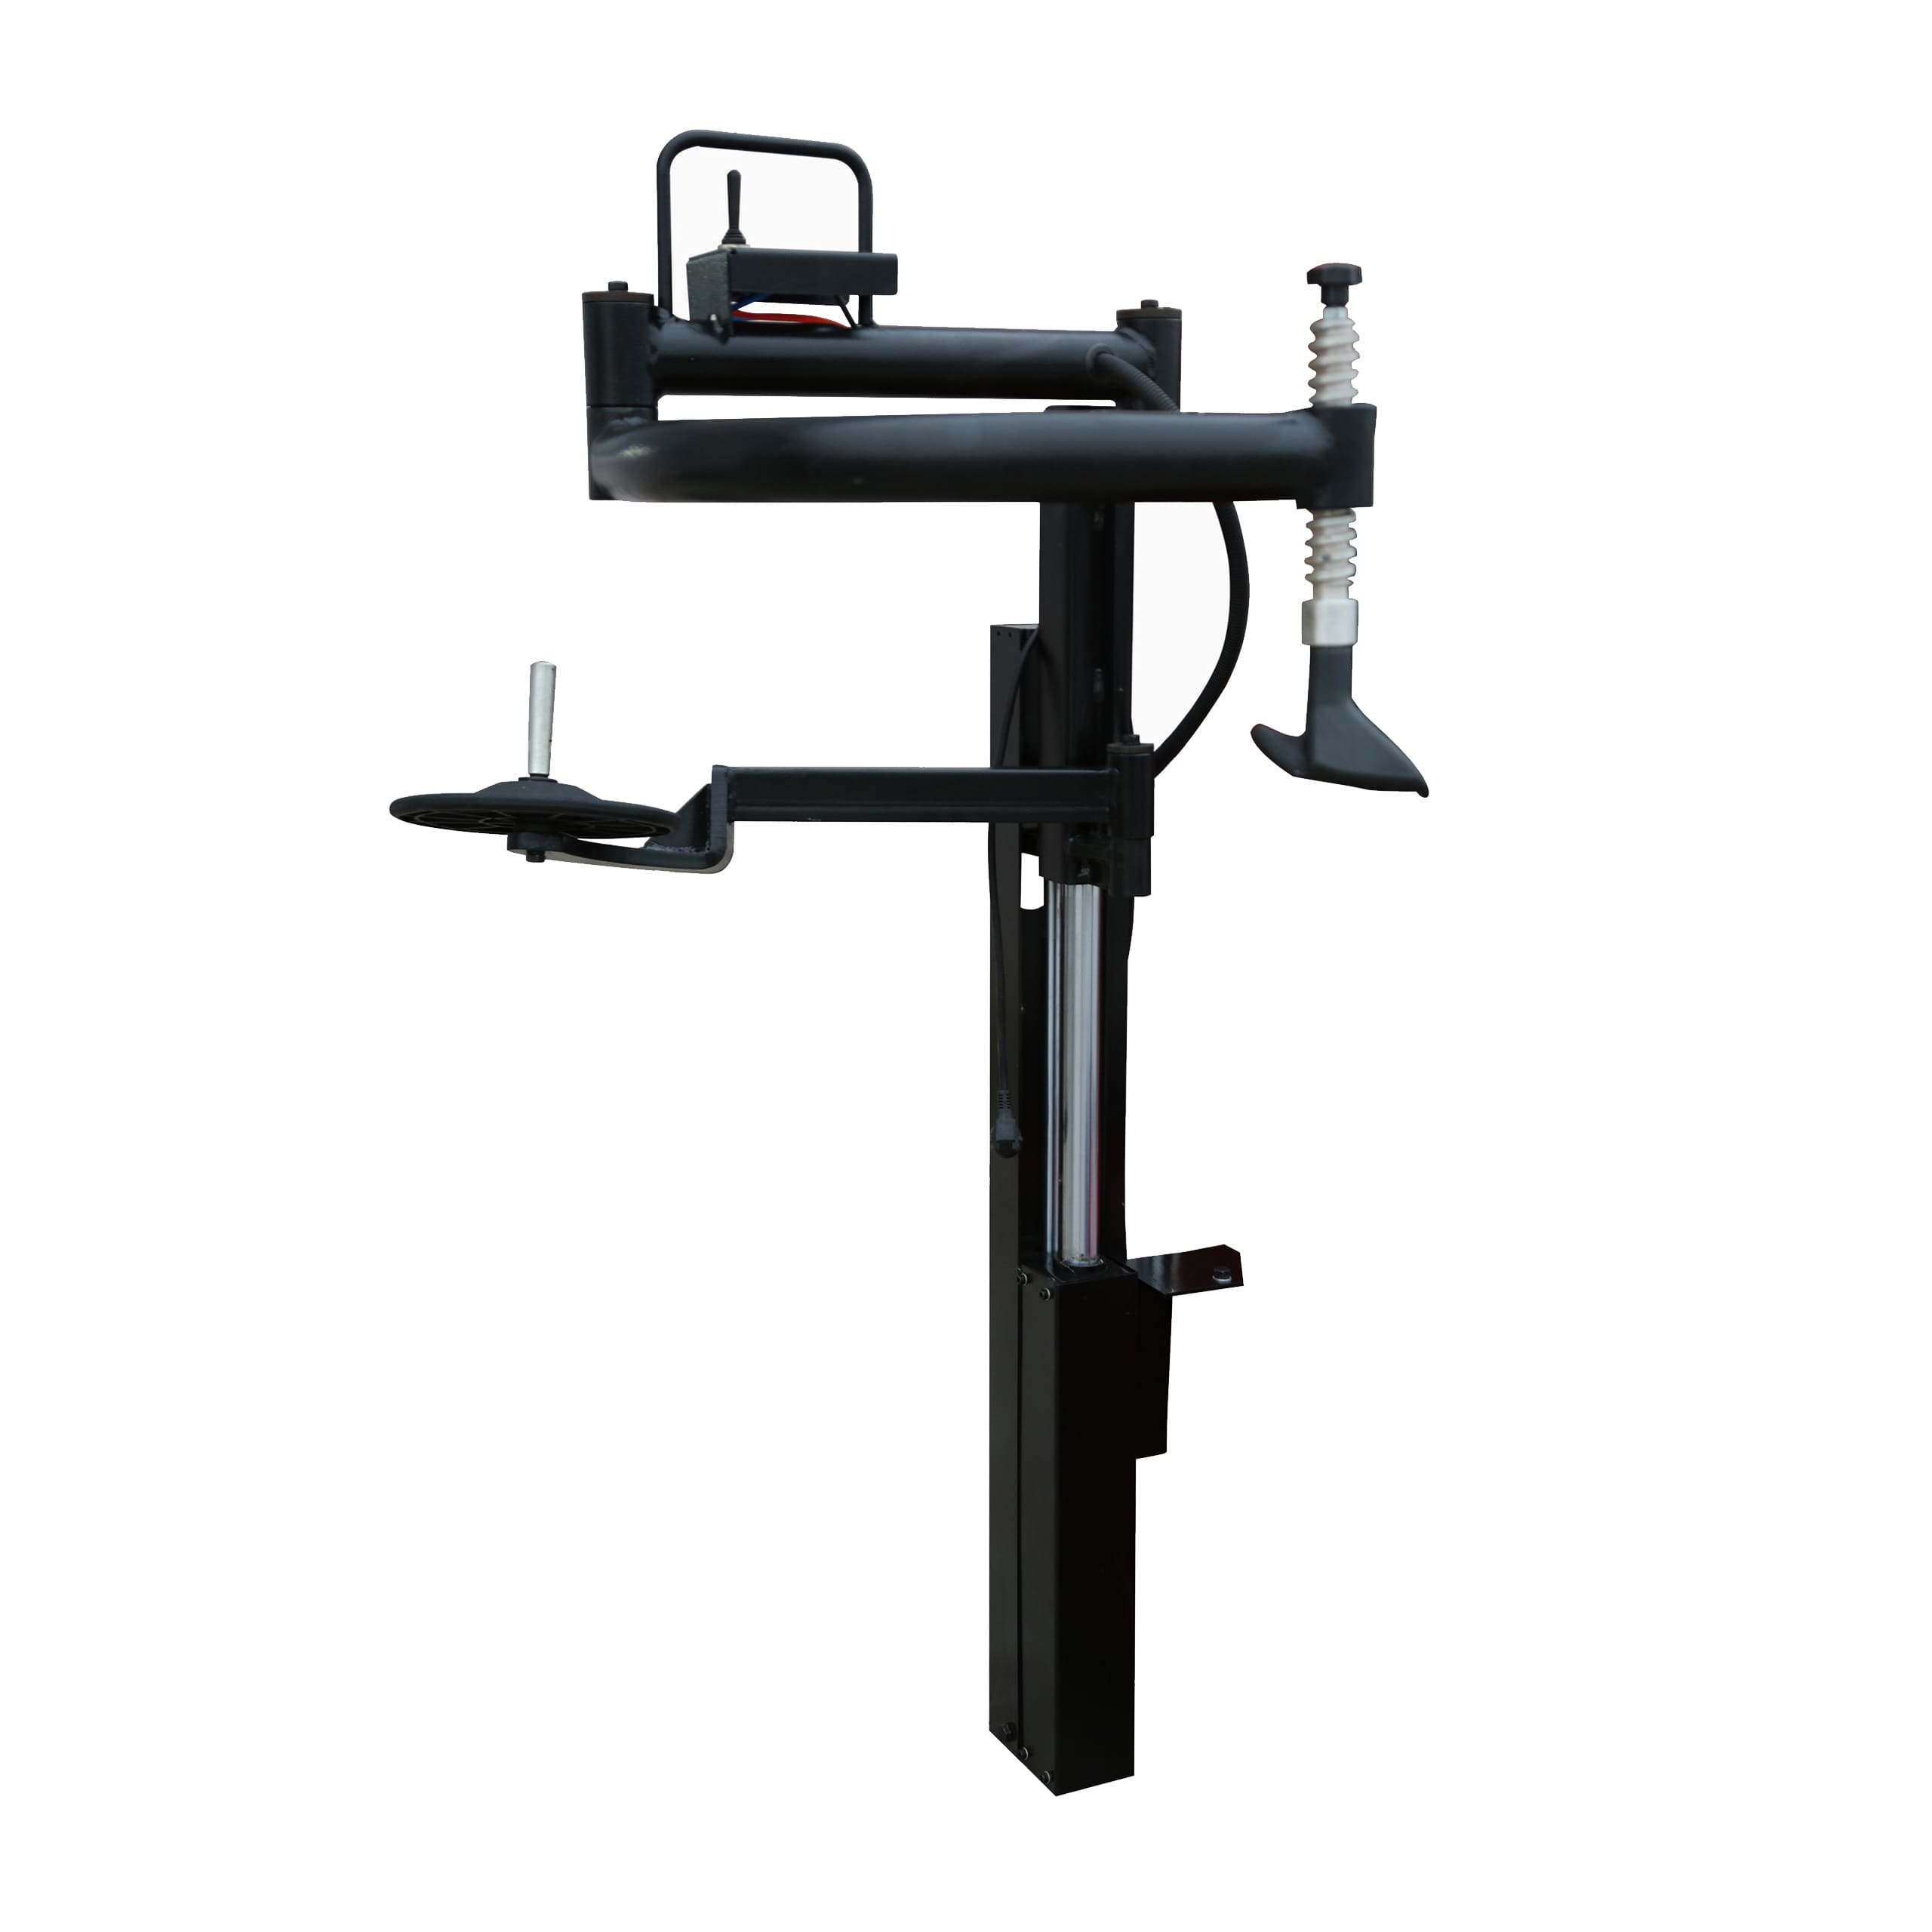 Pneumatic Assist Arm for TMG-TC24 Tire Changer